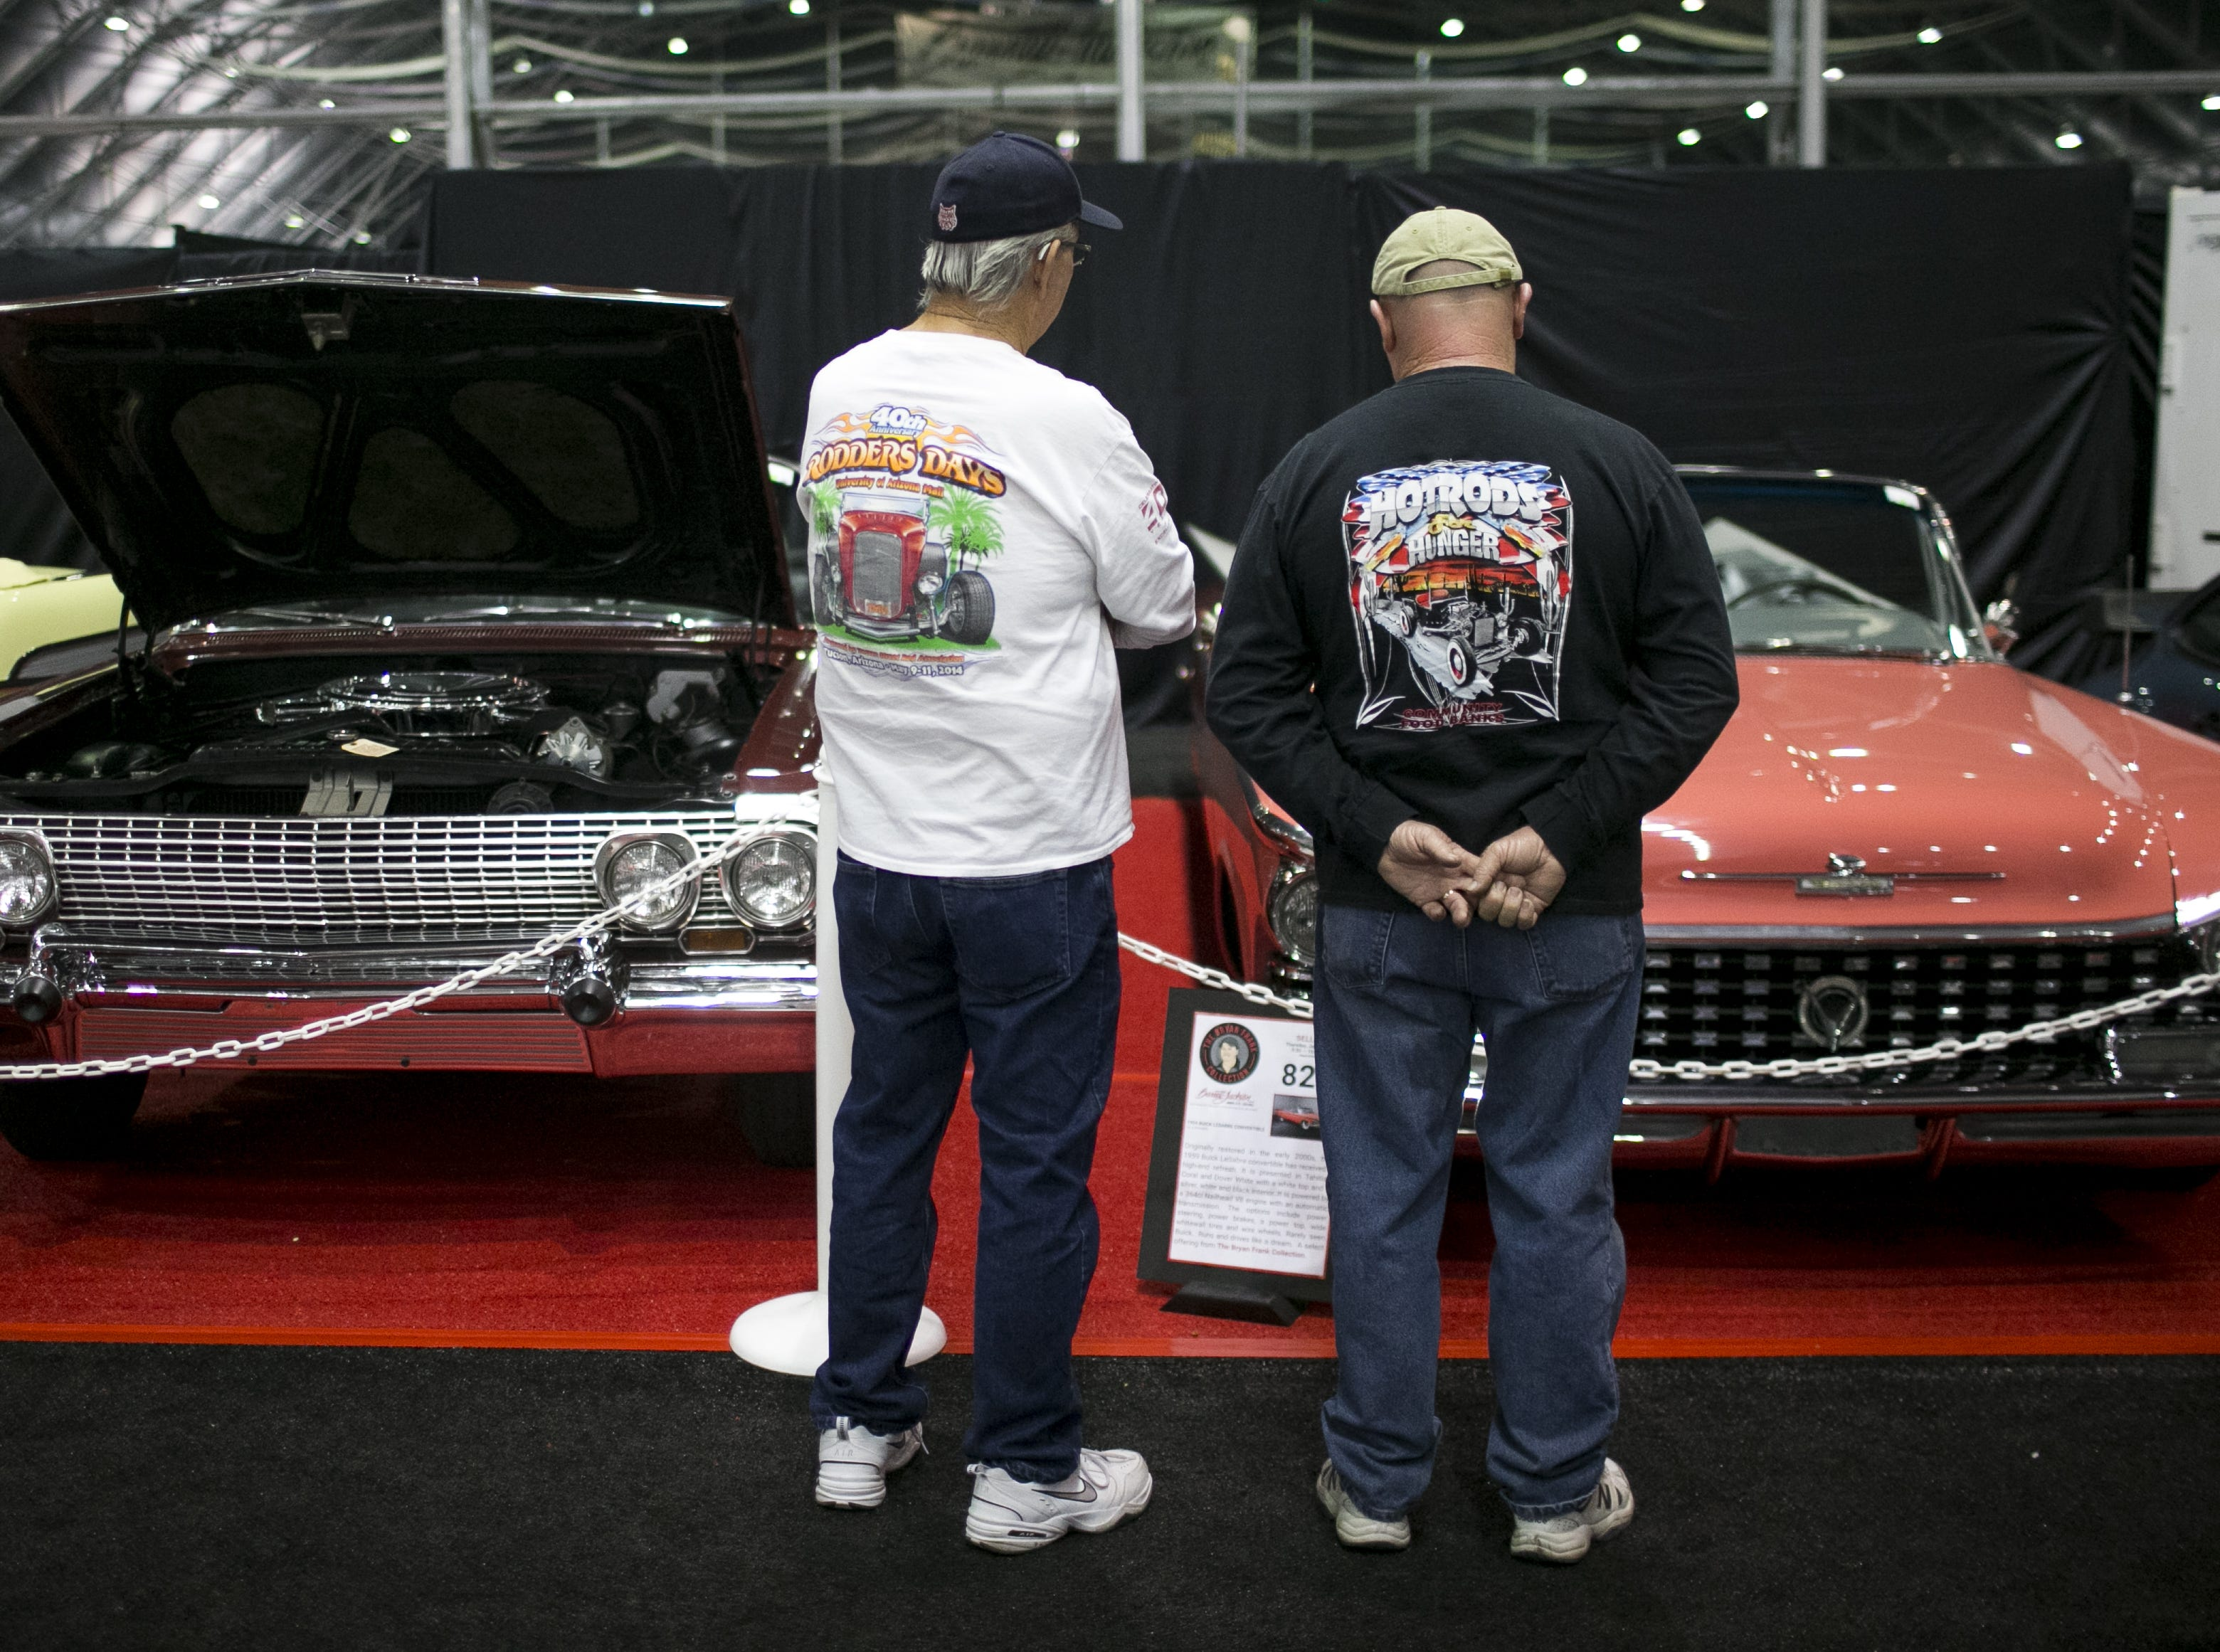 Glenn Looney (left) and Randy Glazebrook (right) look at a 1959 Buick Lesabre at the Barrett-Jackson Car Auction at WestWorld in Scottsdale, Arizona, on Jan. 16, 2019.